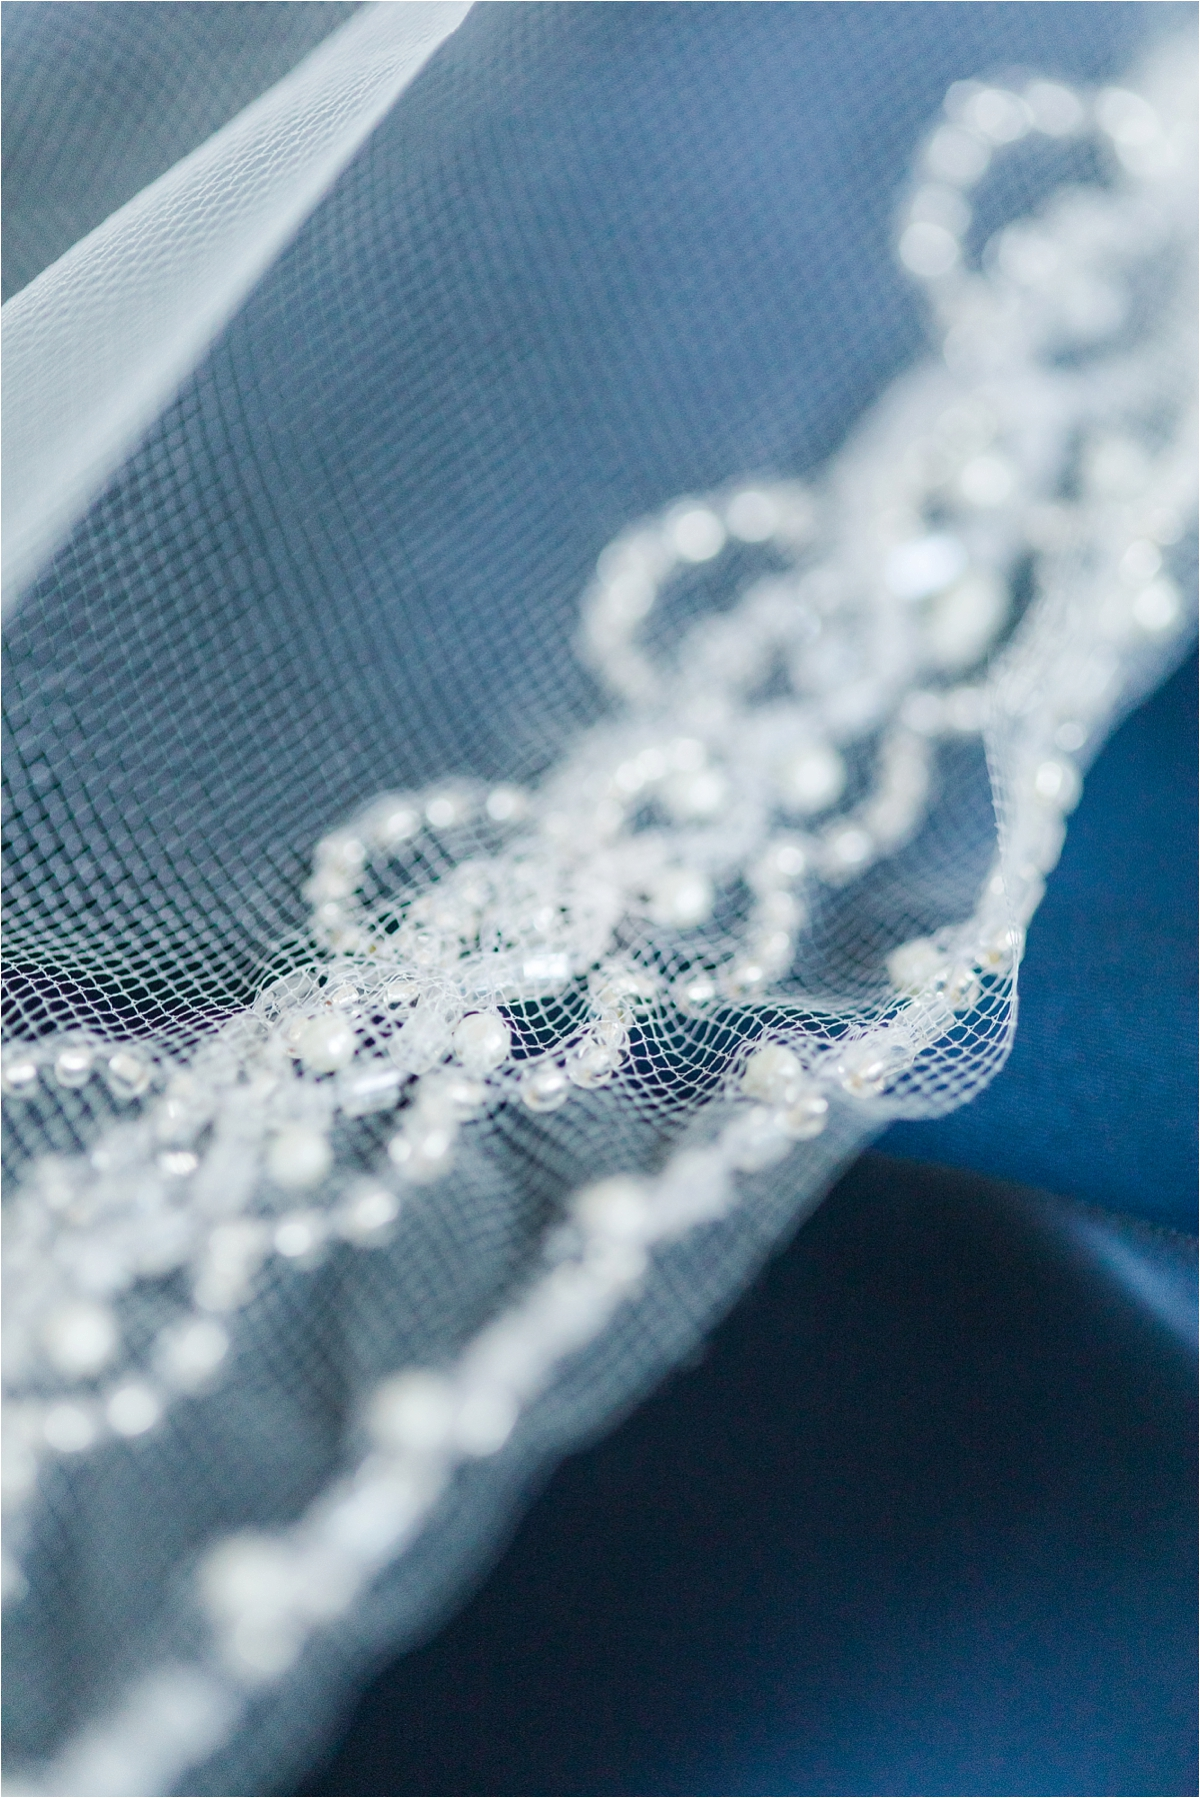 veil-wedding-lace-pearls-details-navy-wedding